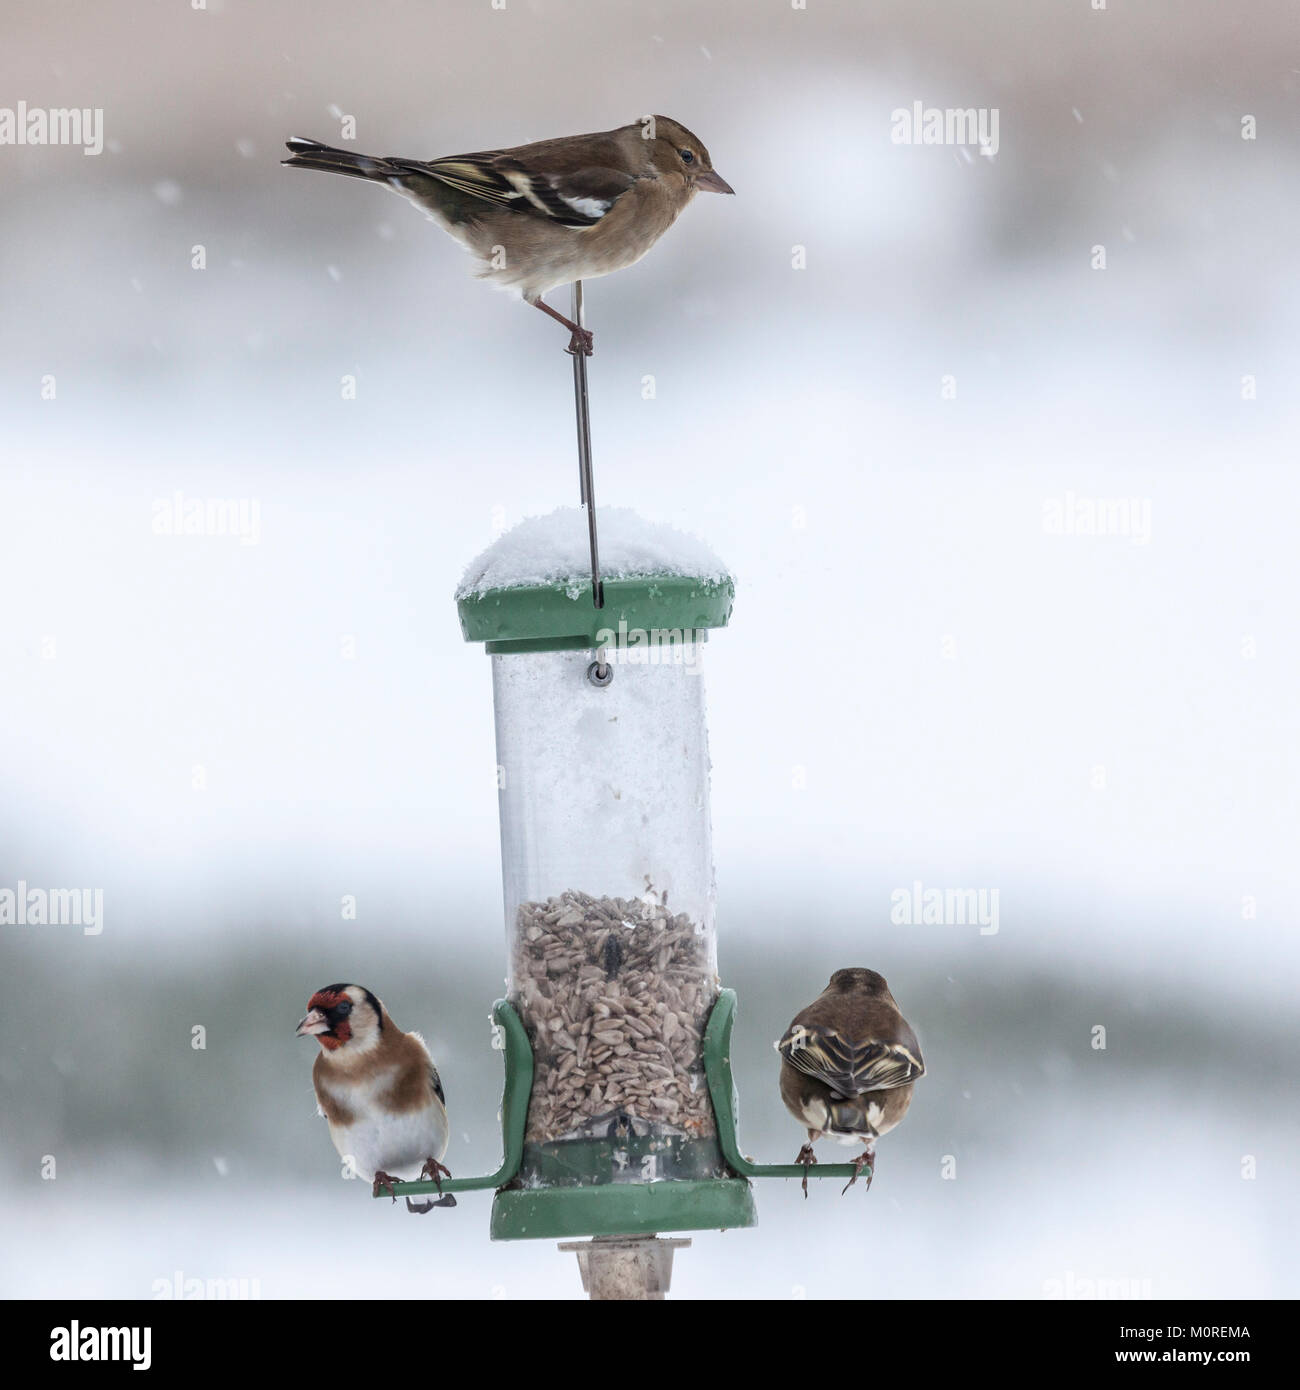 A Goldfinch and two female Chaffinches on a feeder during a snow shower at Lochwinnoch RSPB reserve, Scotland, UK. - Stock Image